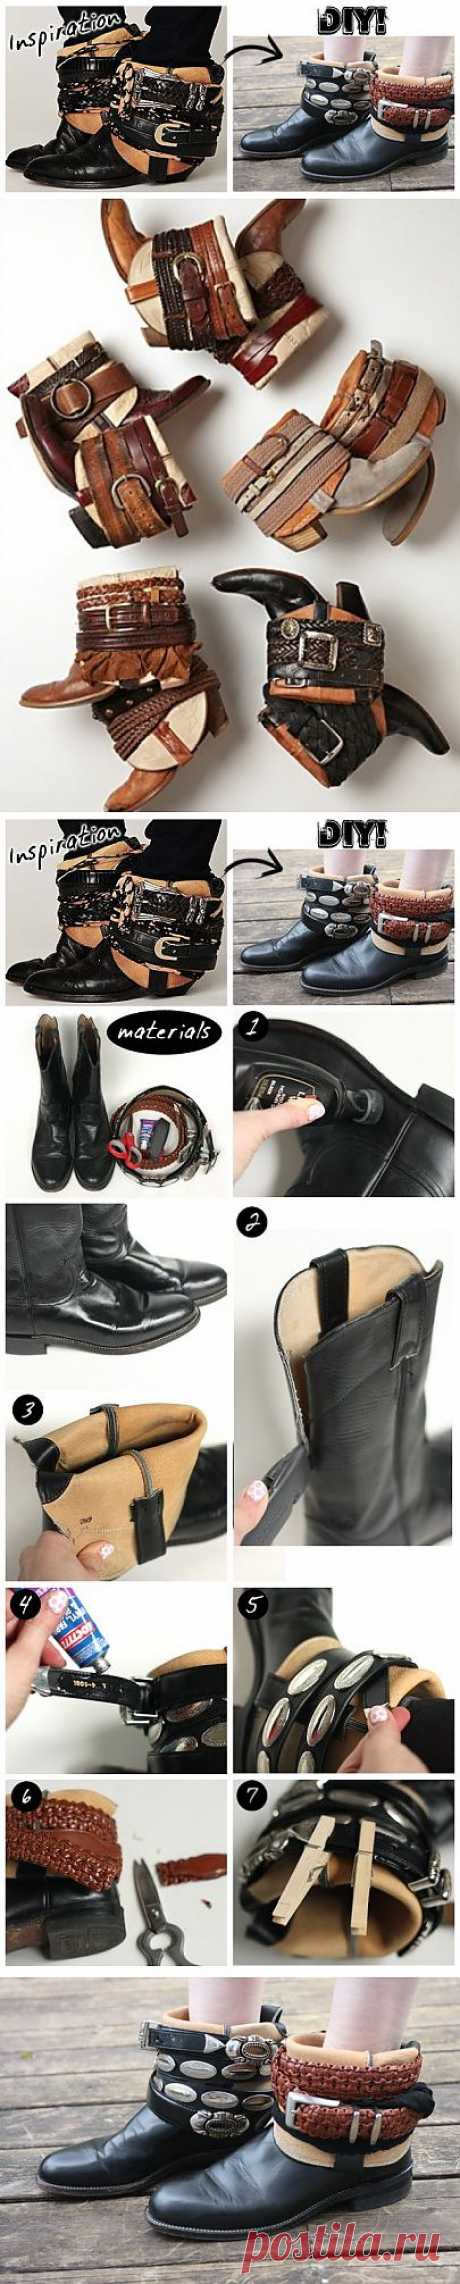 Upgrade of boots (DIY) \/ Footwear \/ the Fashionable website about stylish alteration of clothes and an interior